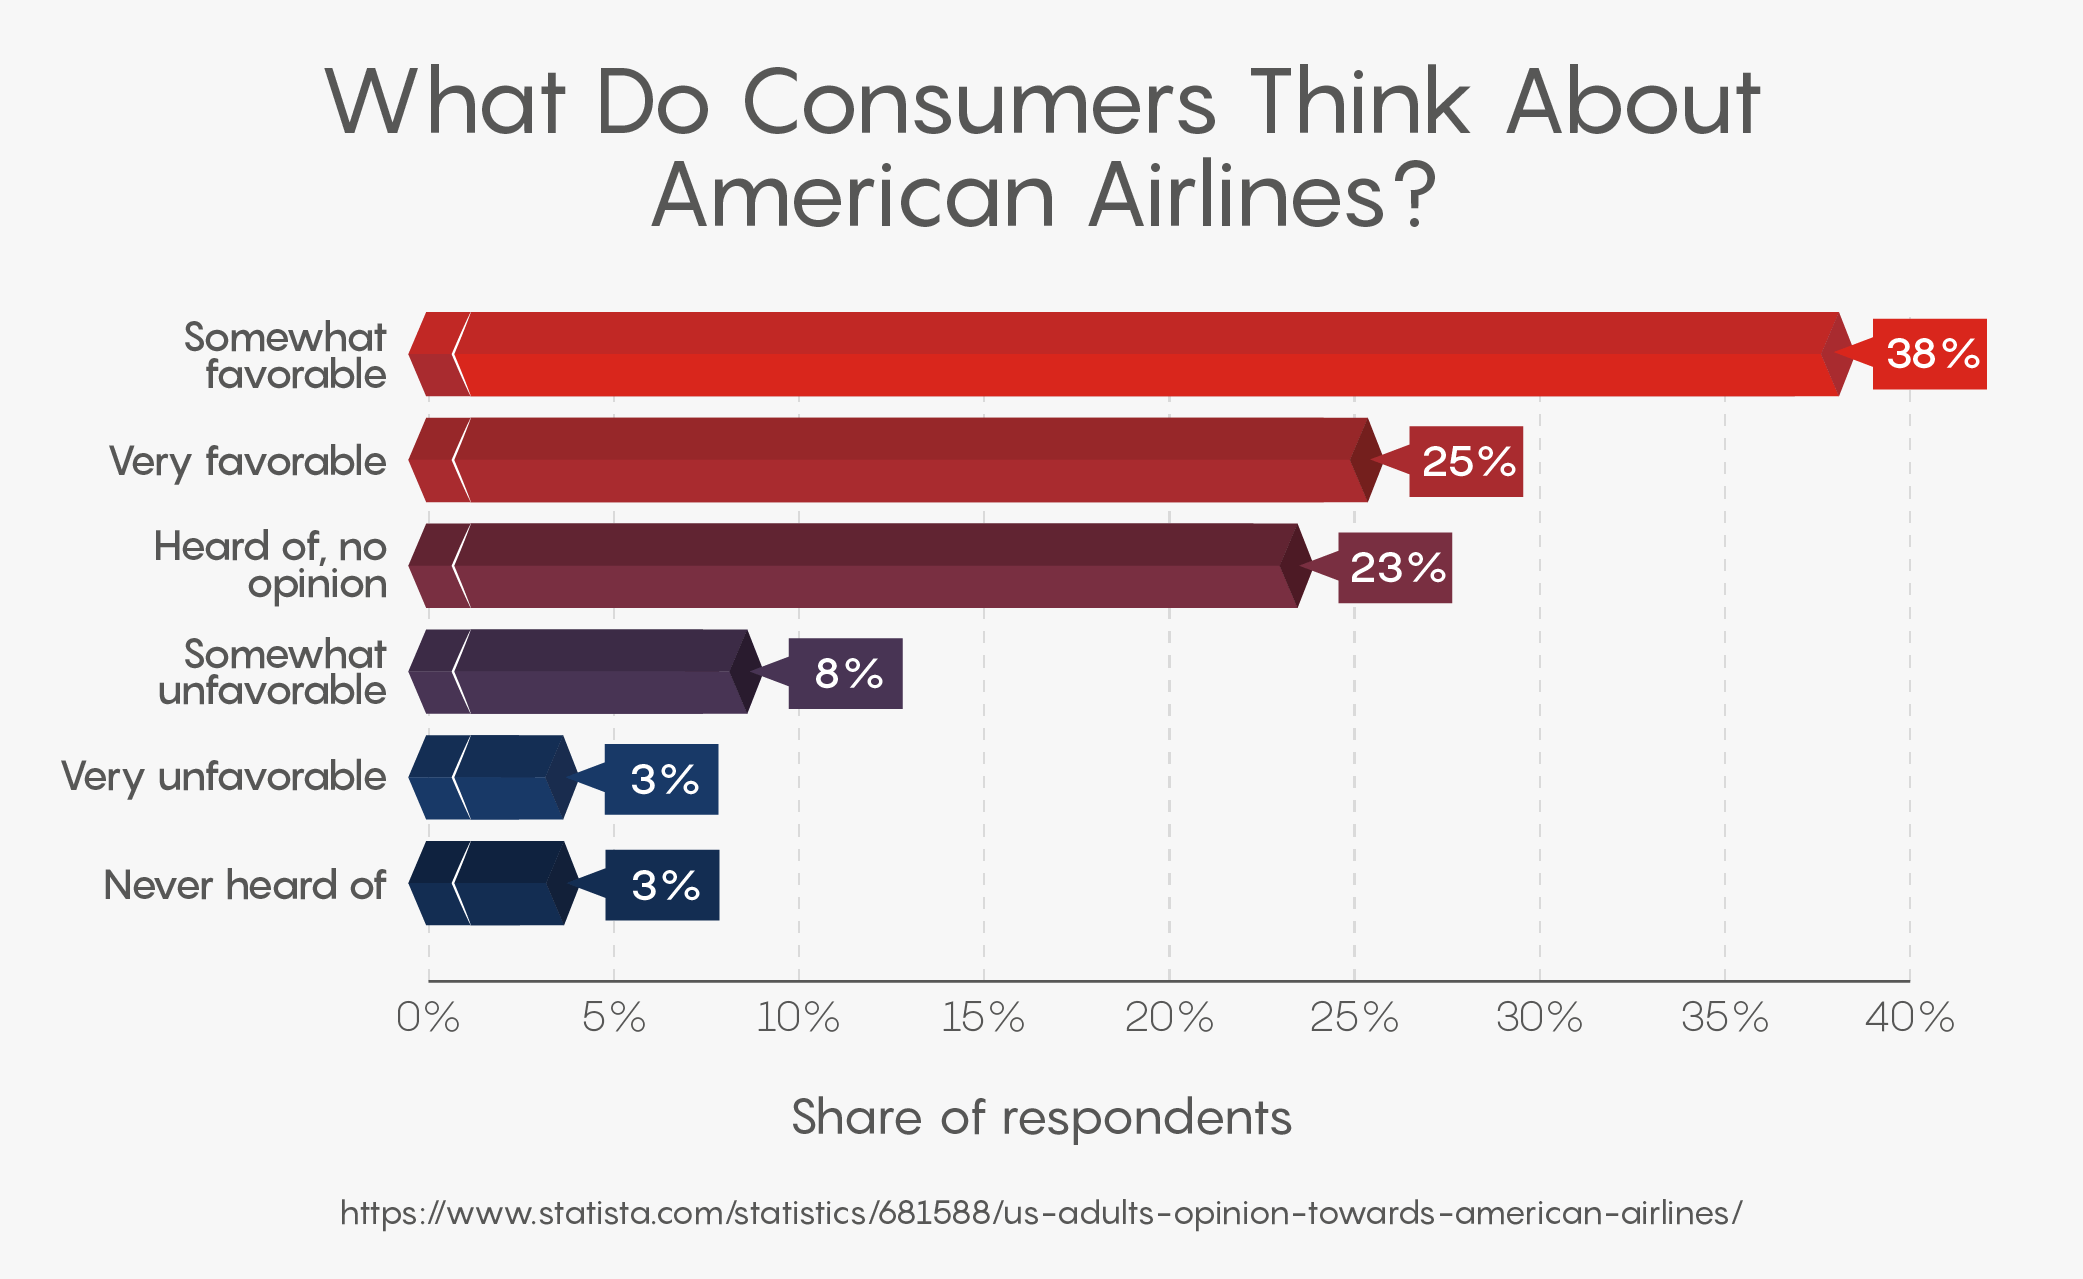 What Do Consumers Think About American Airlines?